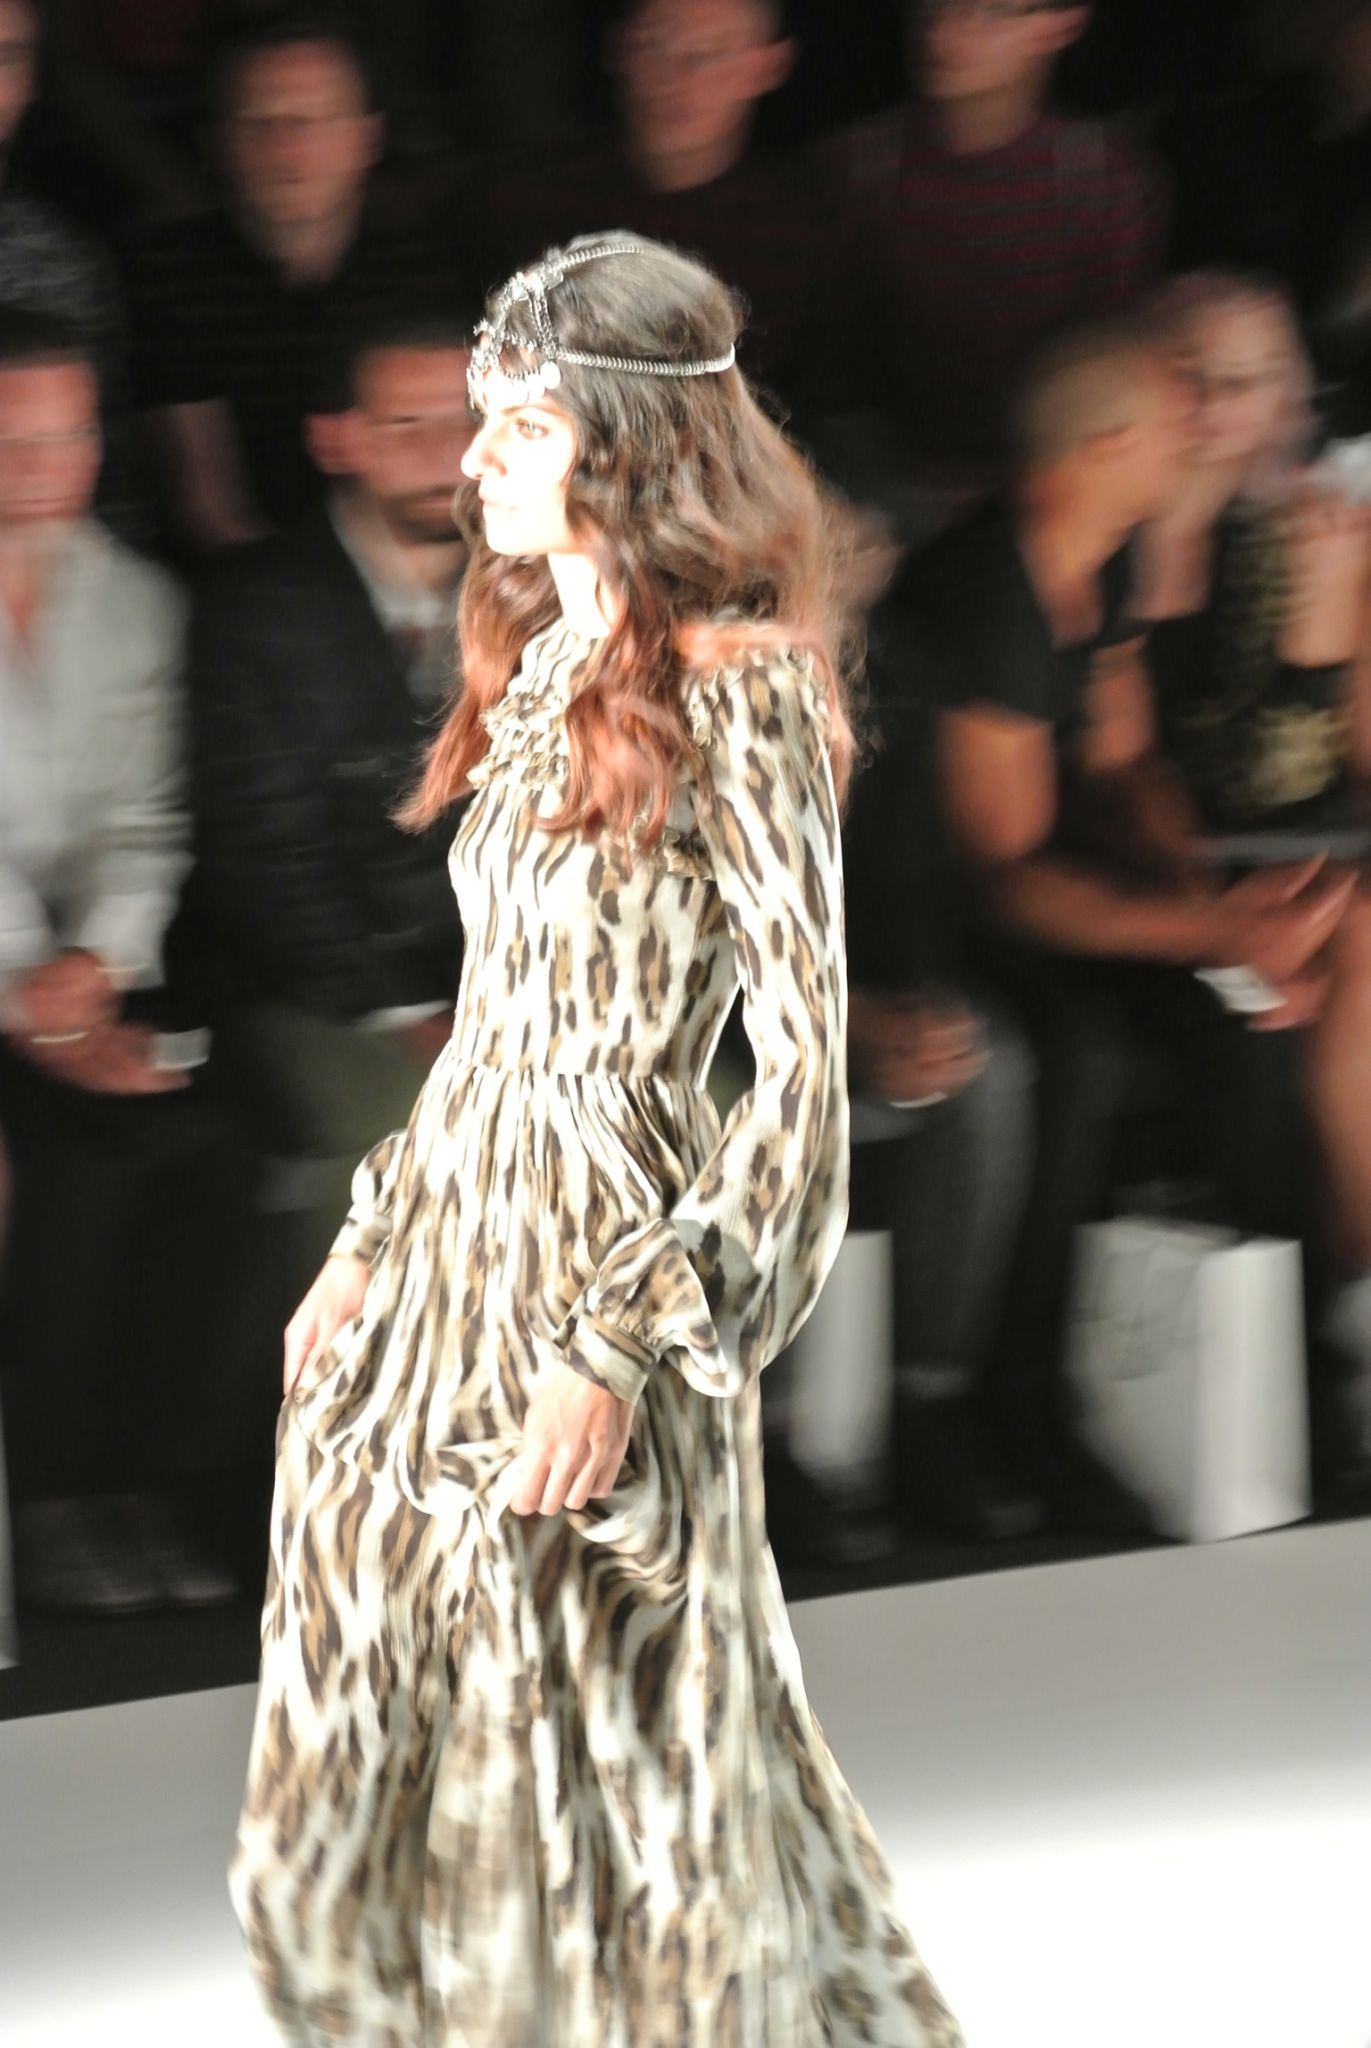 Fashionweek Berlin – Highlight Fashionshow von Dimitri #mbfw